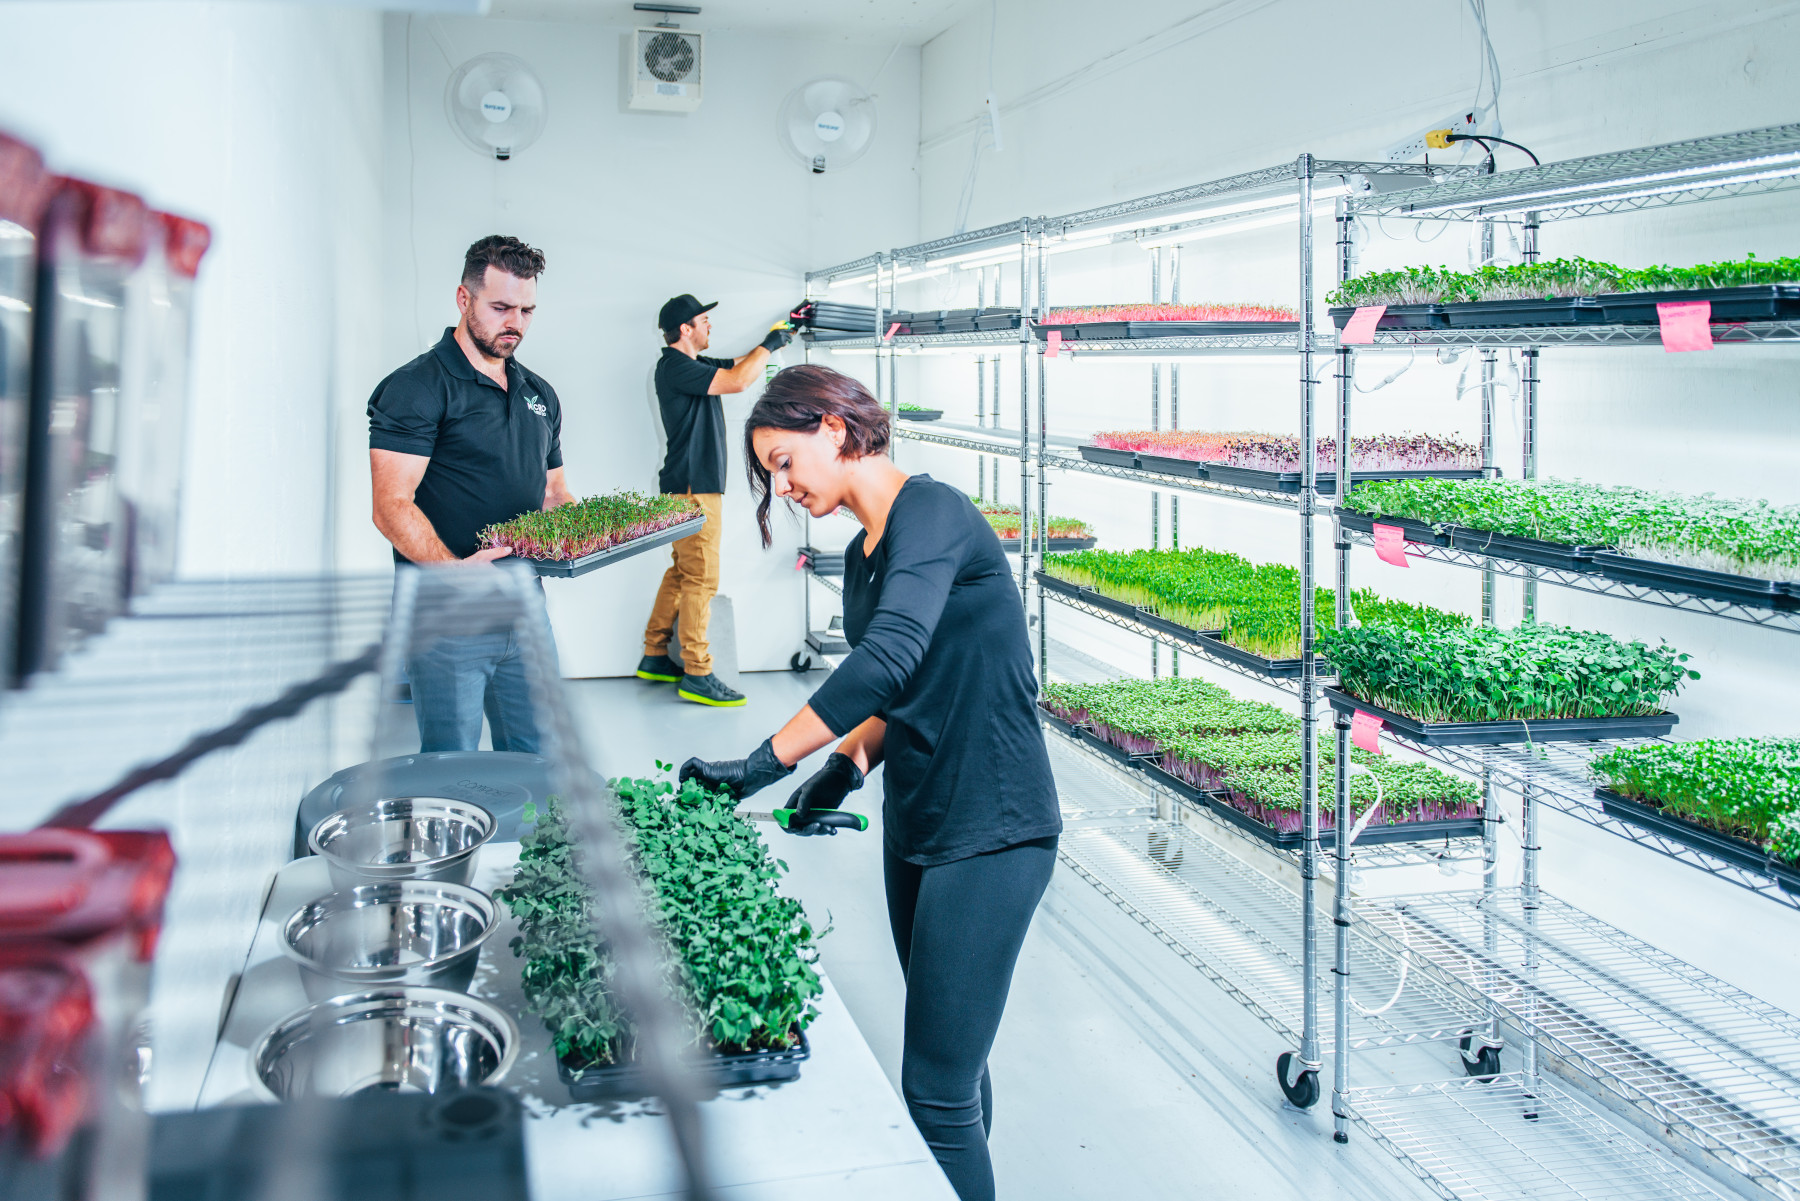 Growers working in microgreen grow facility